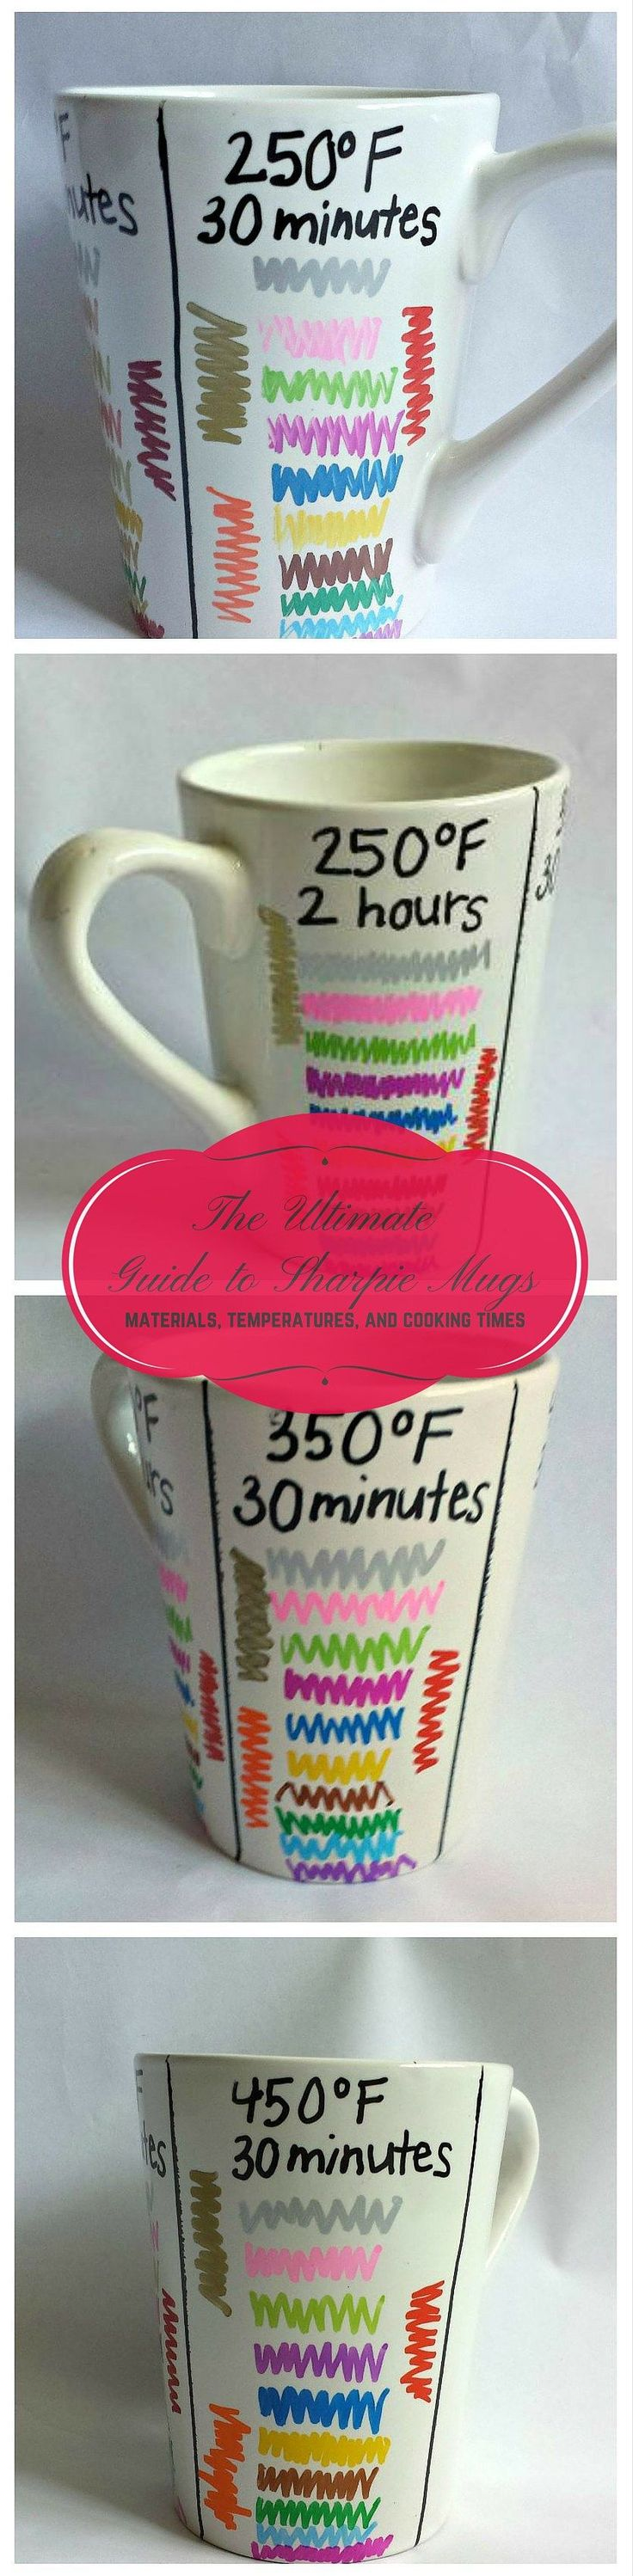 Best DIY Sharpie Mug: use oil-based Sharpies and bake @250 for 2 hrs for best, long-lasting results